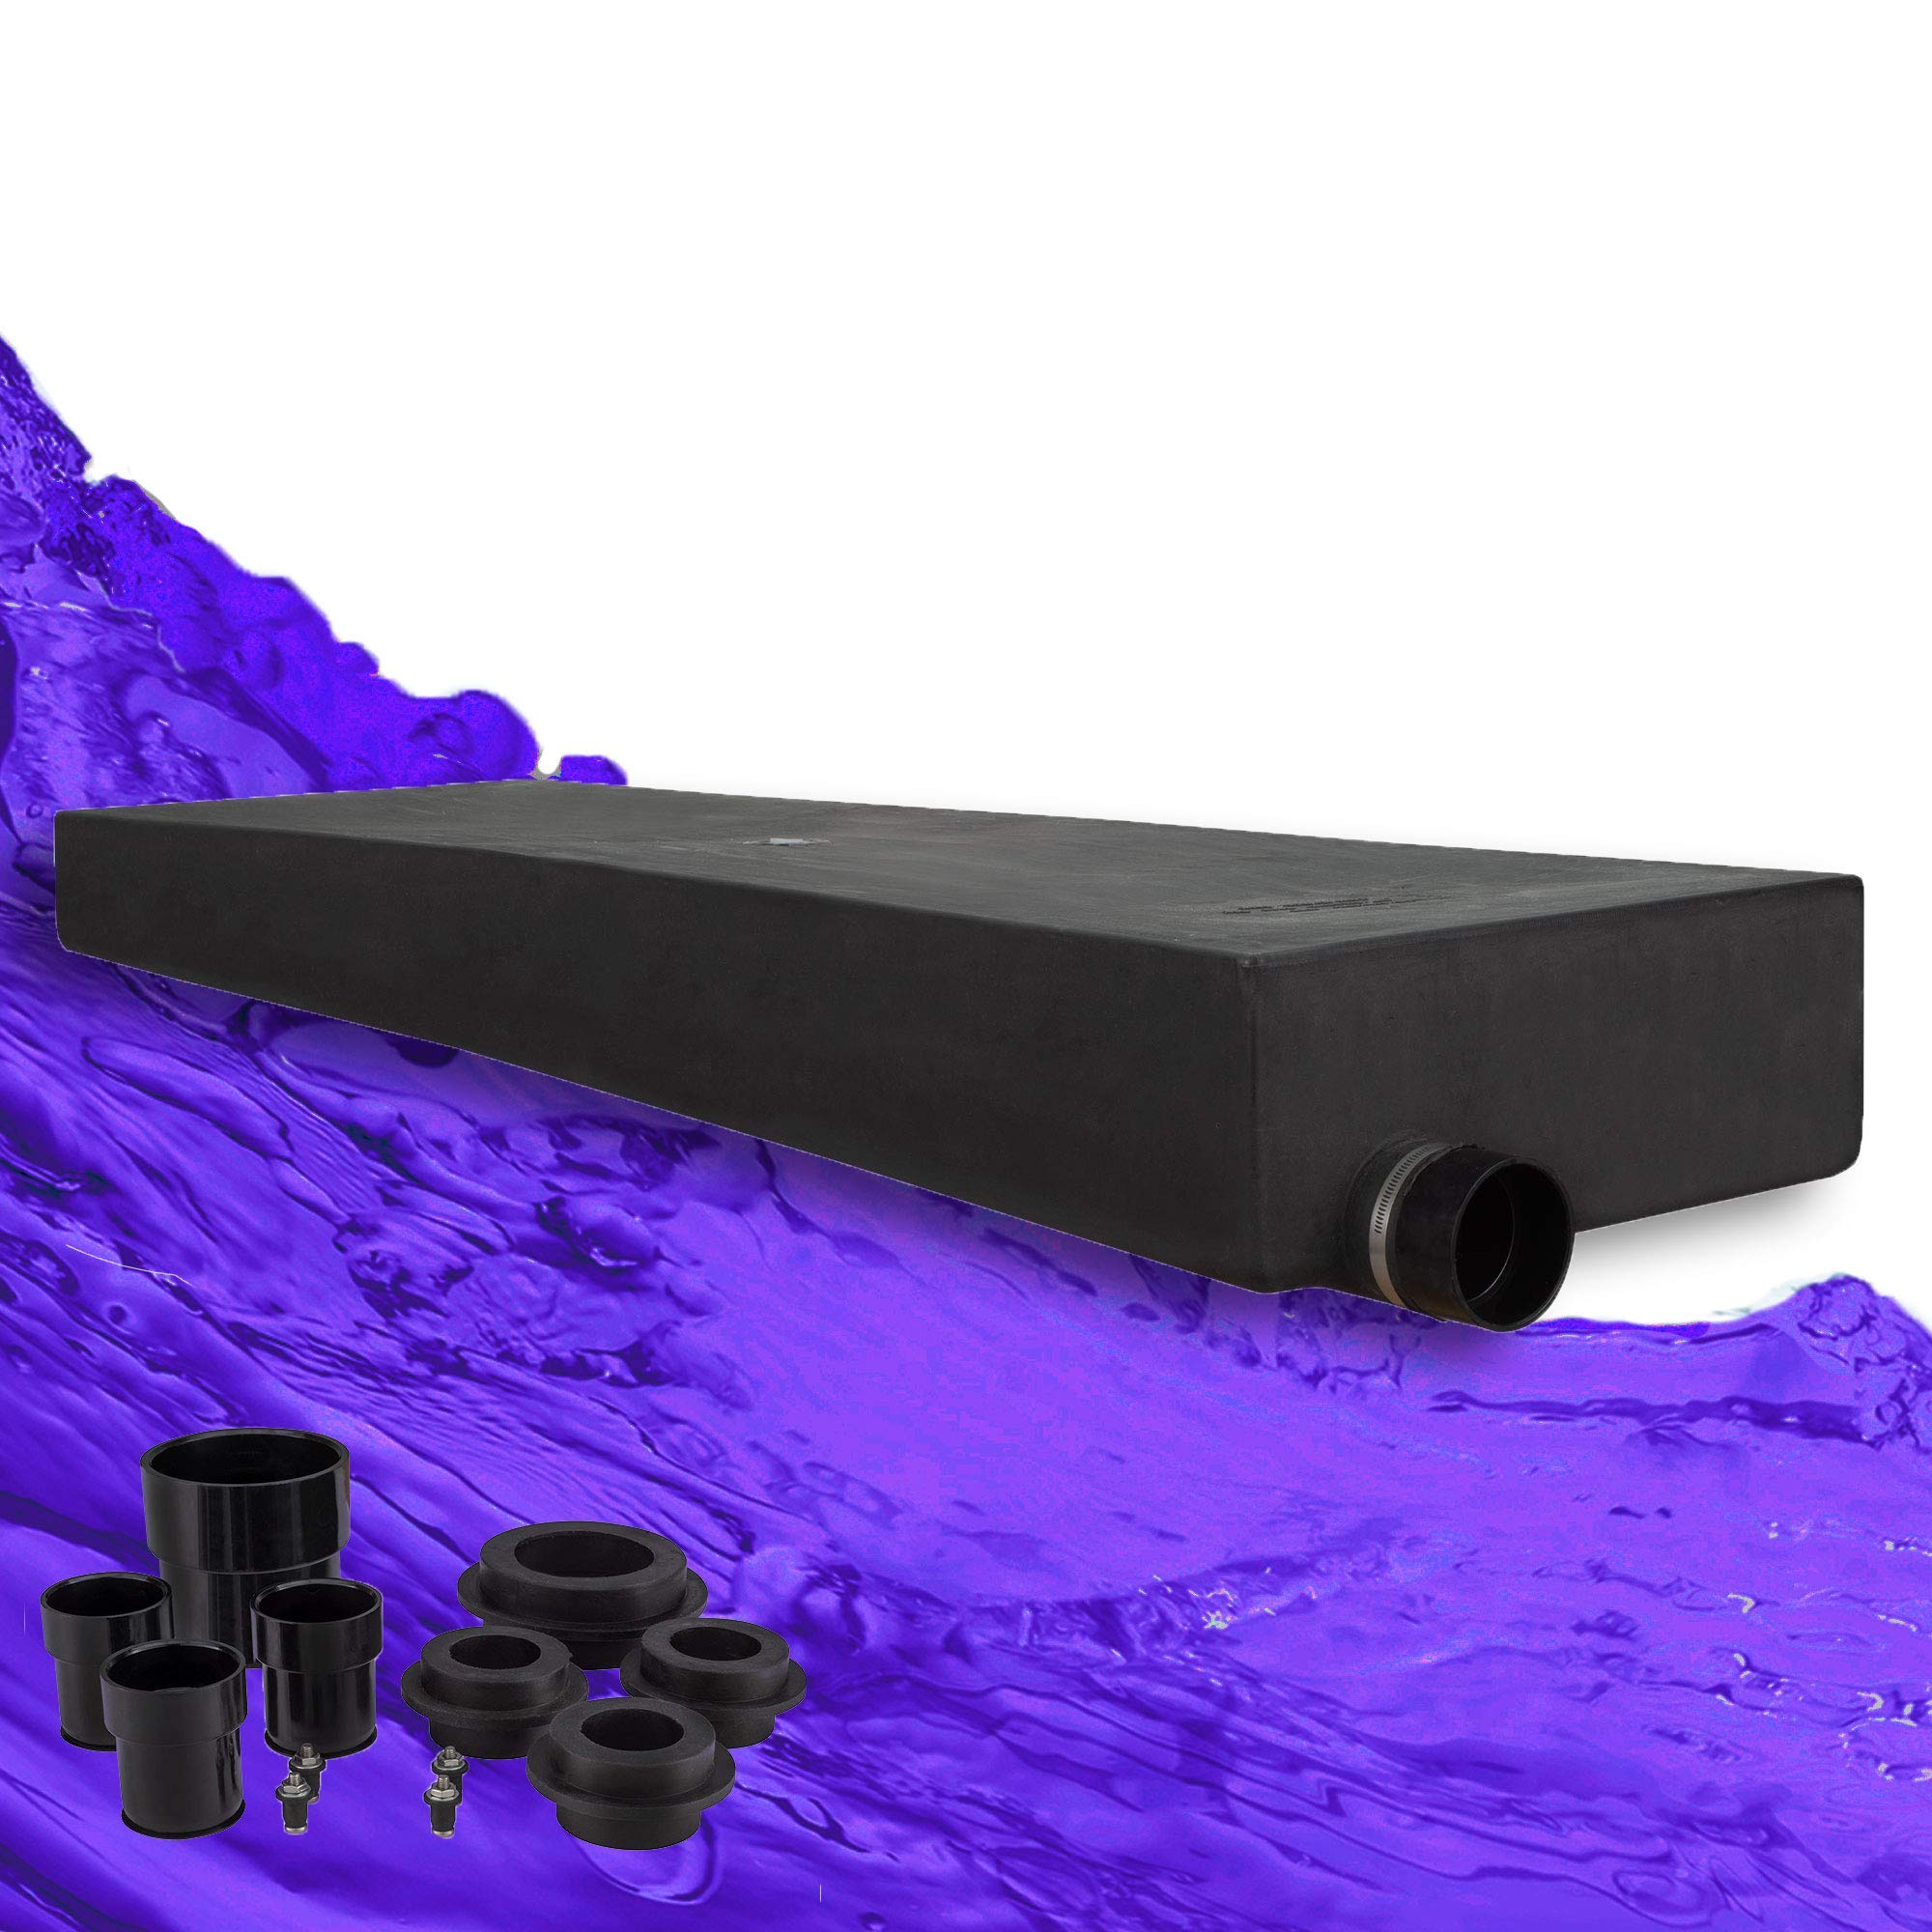 RecPro 42 Gallon RV Holding Tank 66'' x 21'' x 9'' | Black Waste Water | 366H | Includes Universal Installation Fittings Kit